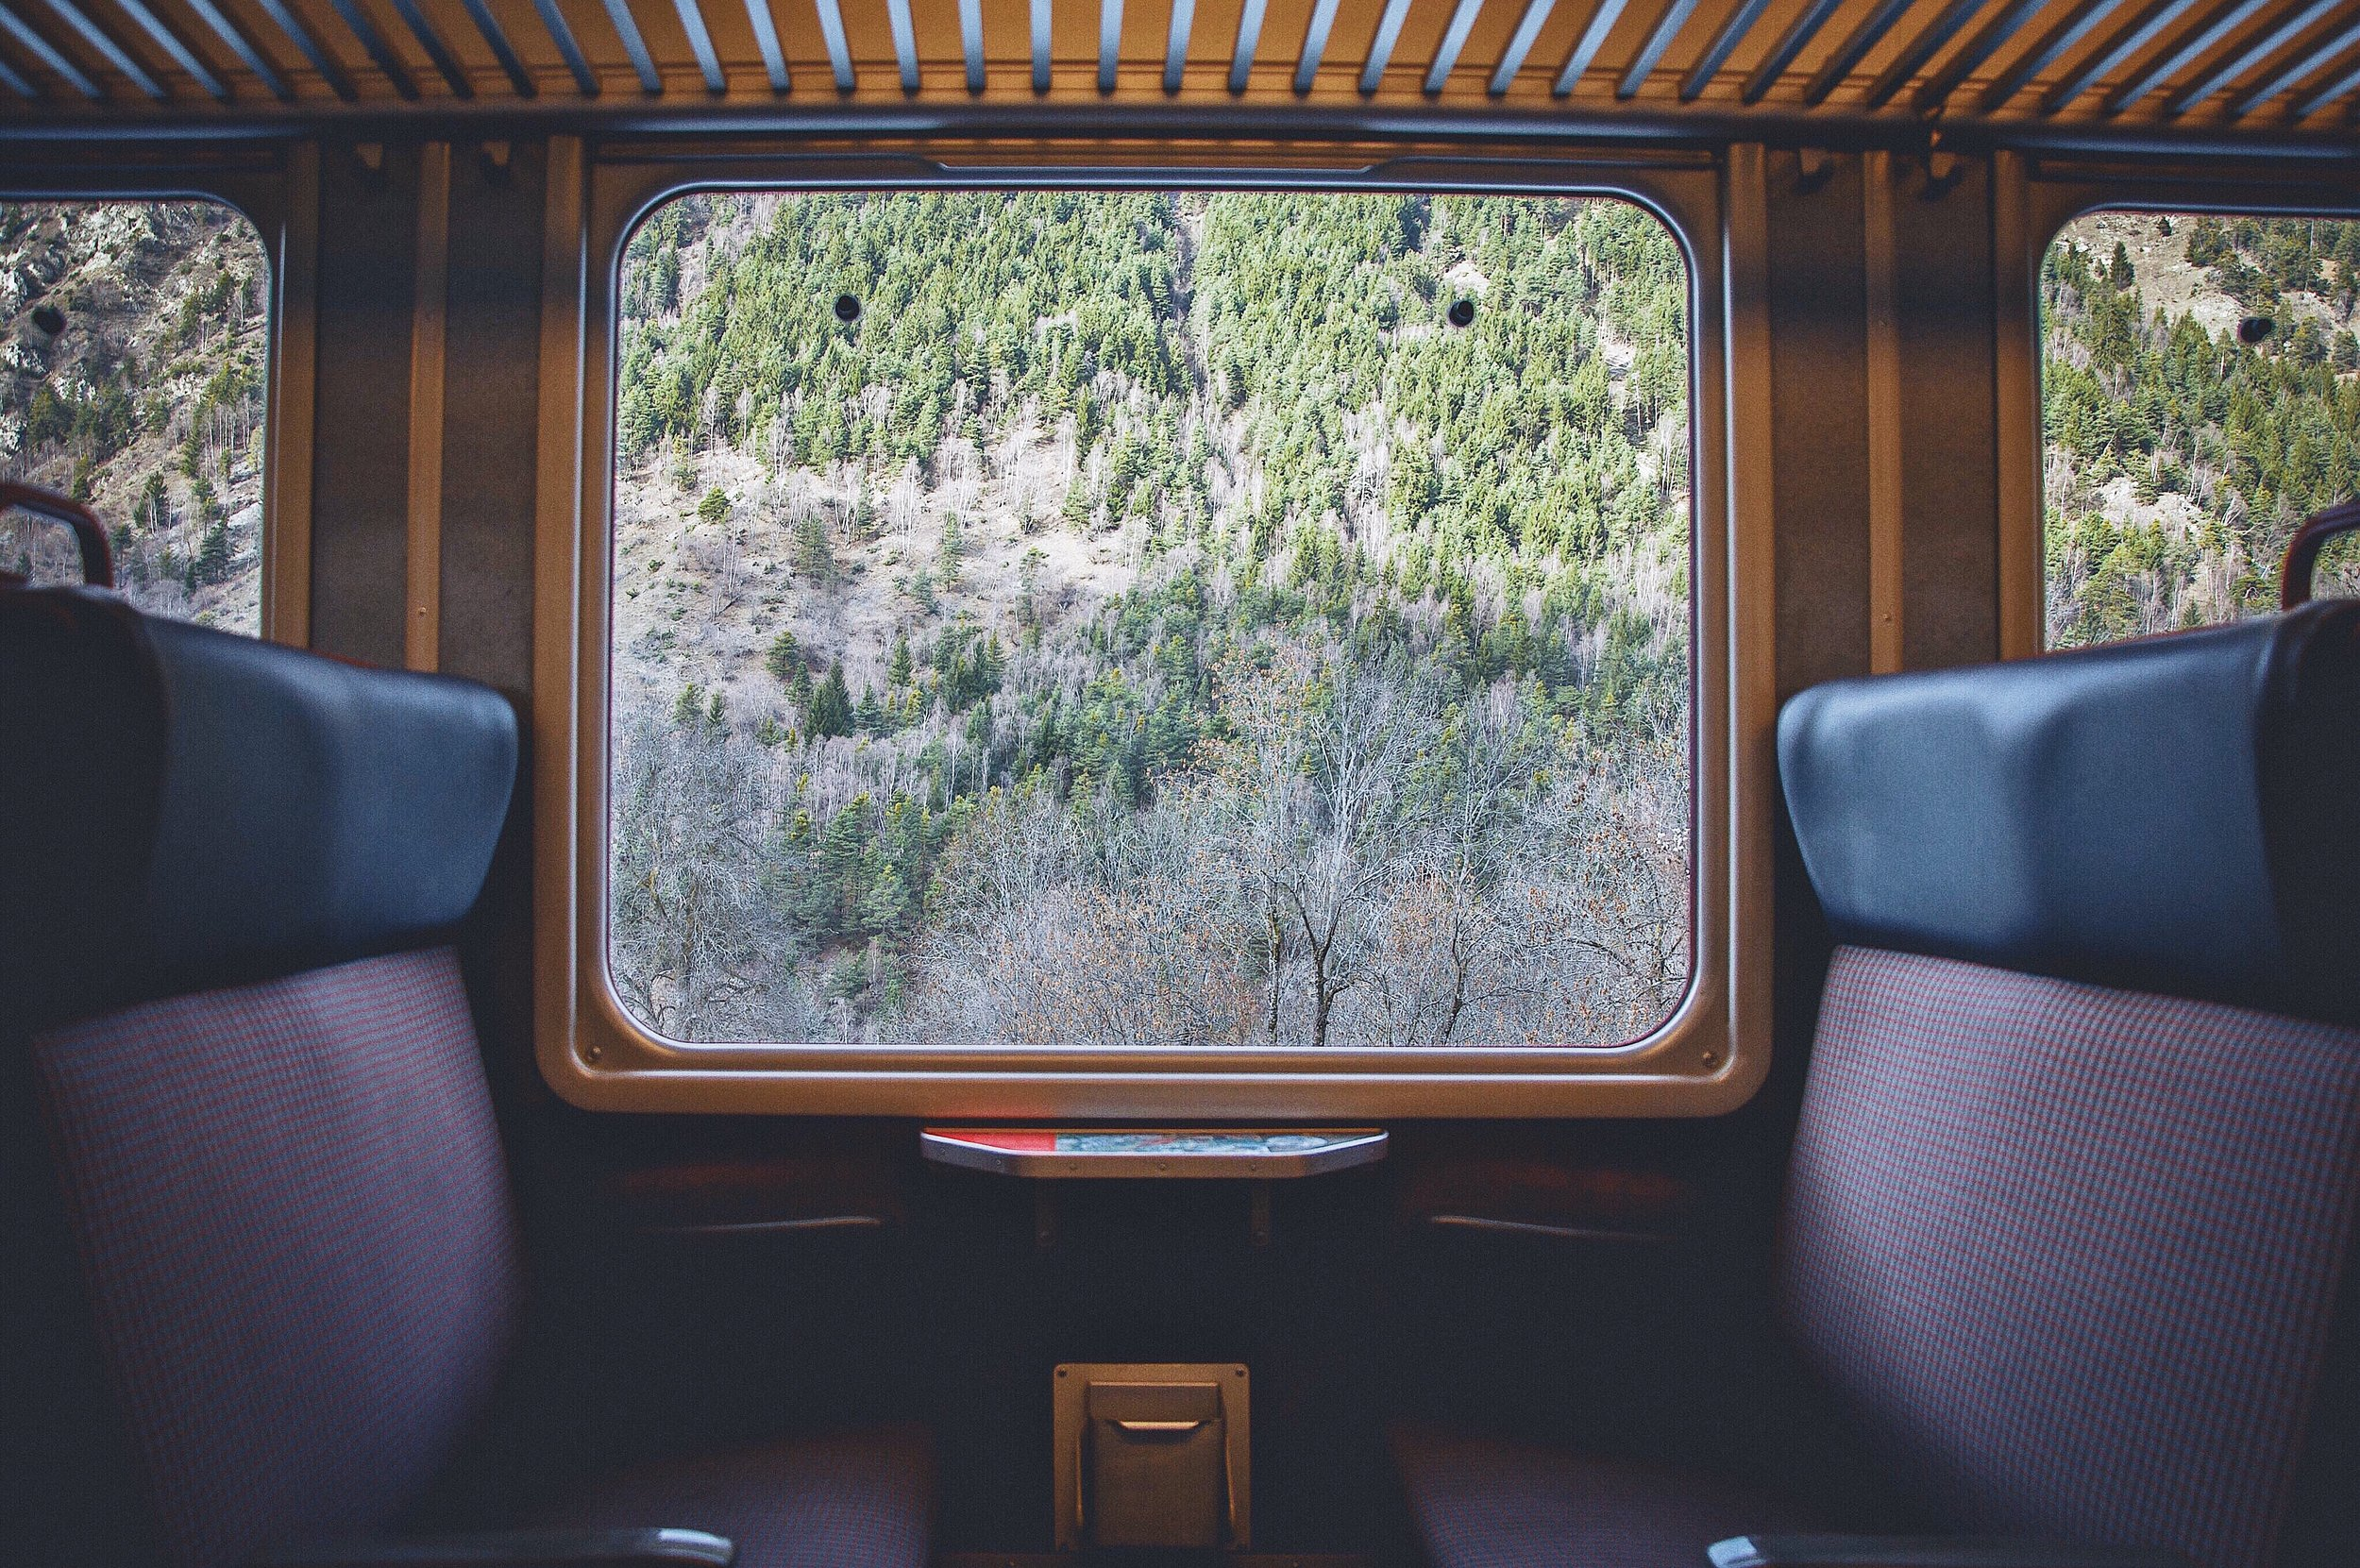 By train - We find the right train journeys and accommodation for you and recommend some interesting activities along the way.